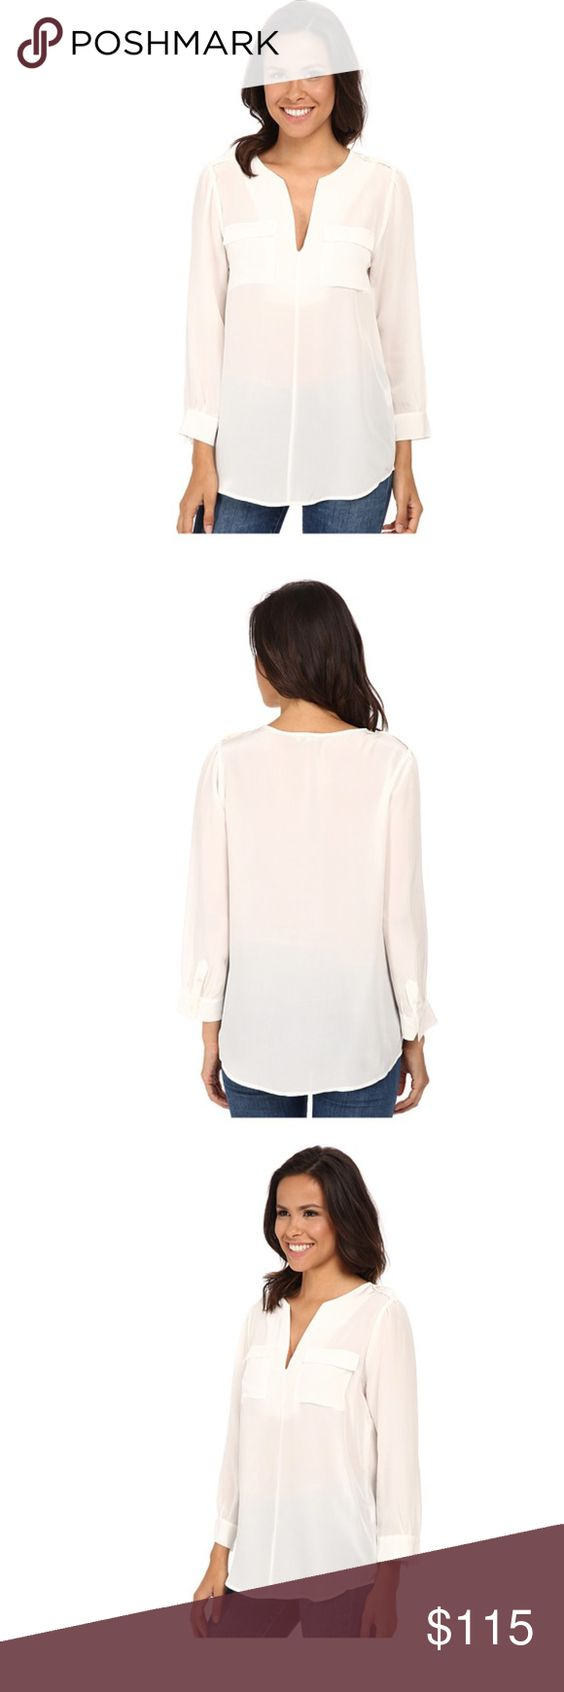 Joie Marlo Silk Top Joie silk top with bracelet length sleeves, two front chest pockets, split V-neck, rounded hem and epaulettes. 100% silk. No stains or pulls, freshly dry cleaned. Still selling new at Joie for $228 Joie Tops Blouses